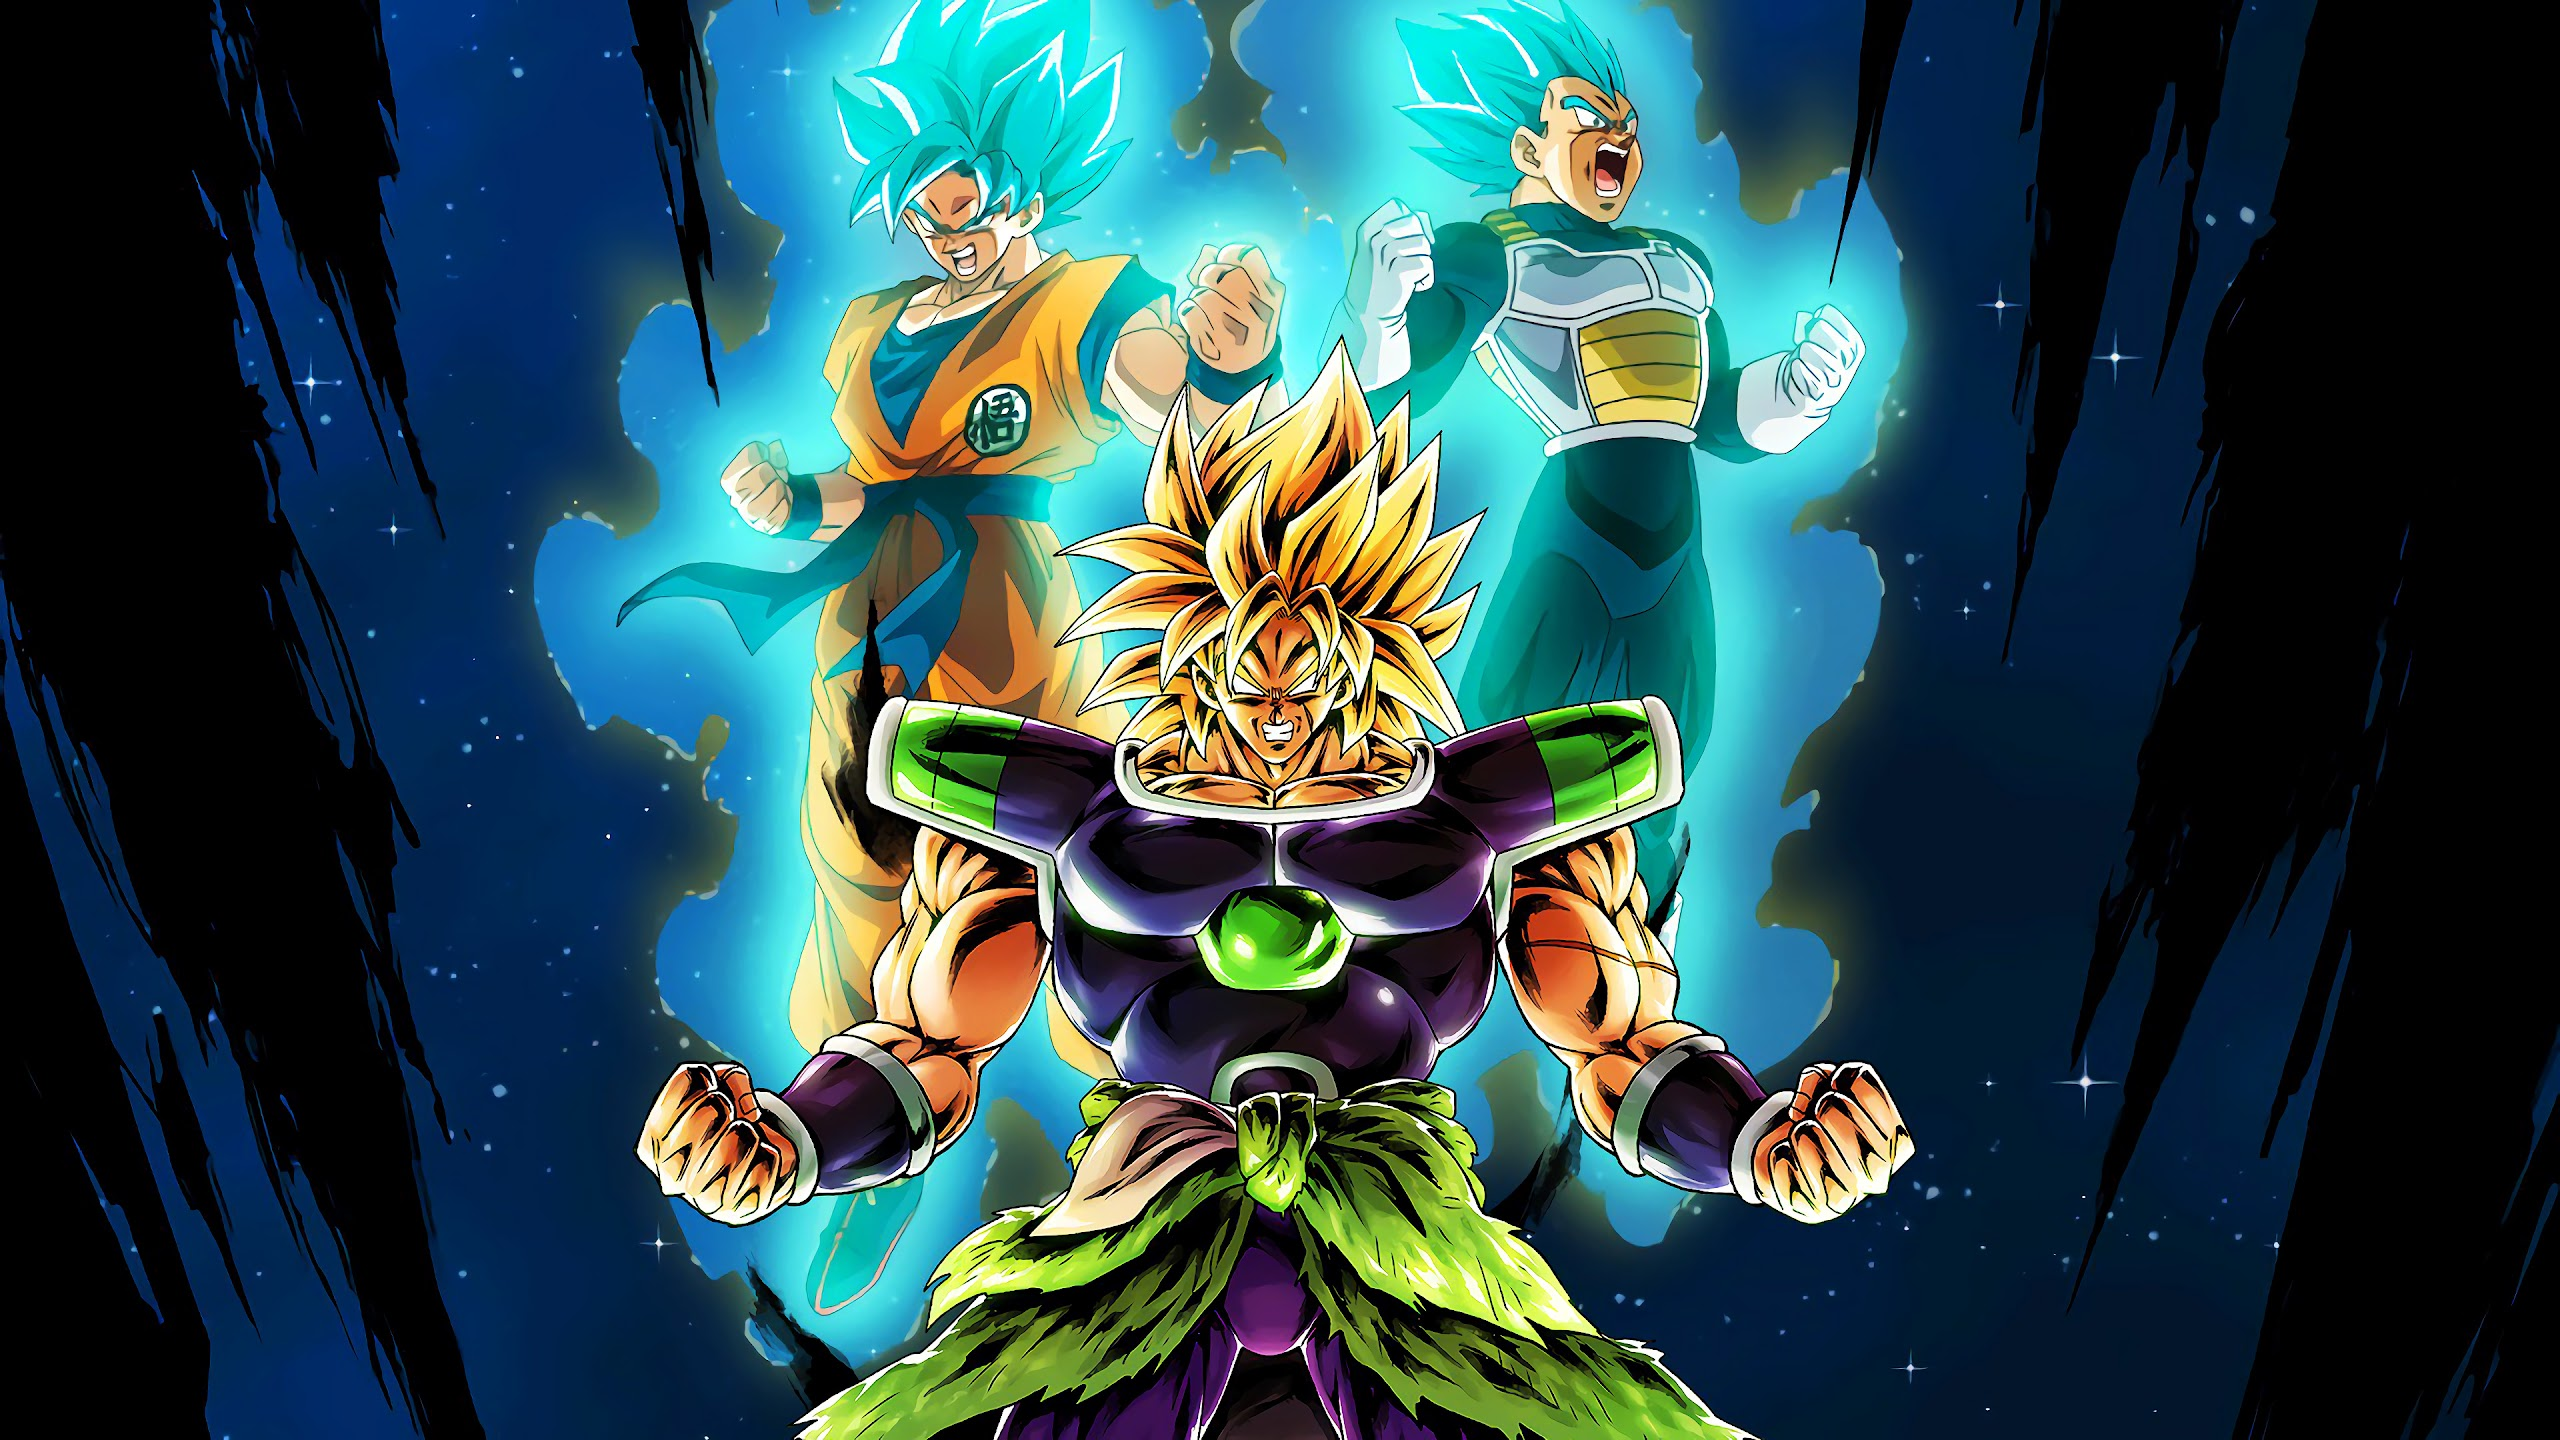 Broly Vegeta Goku Dragon Ball Super Broly 4k Wallpaper 3